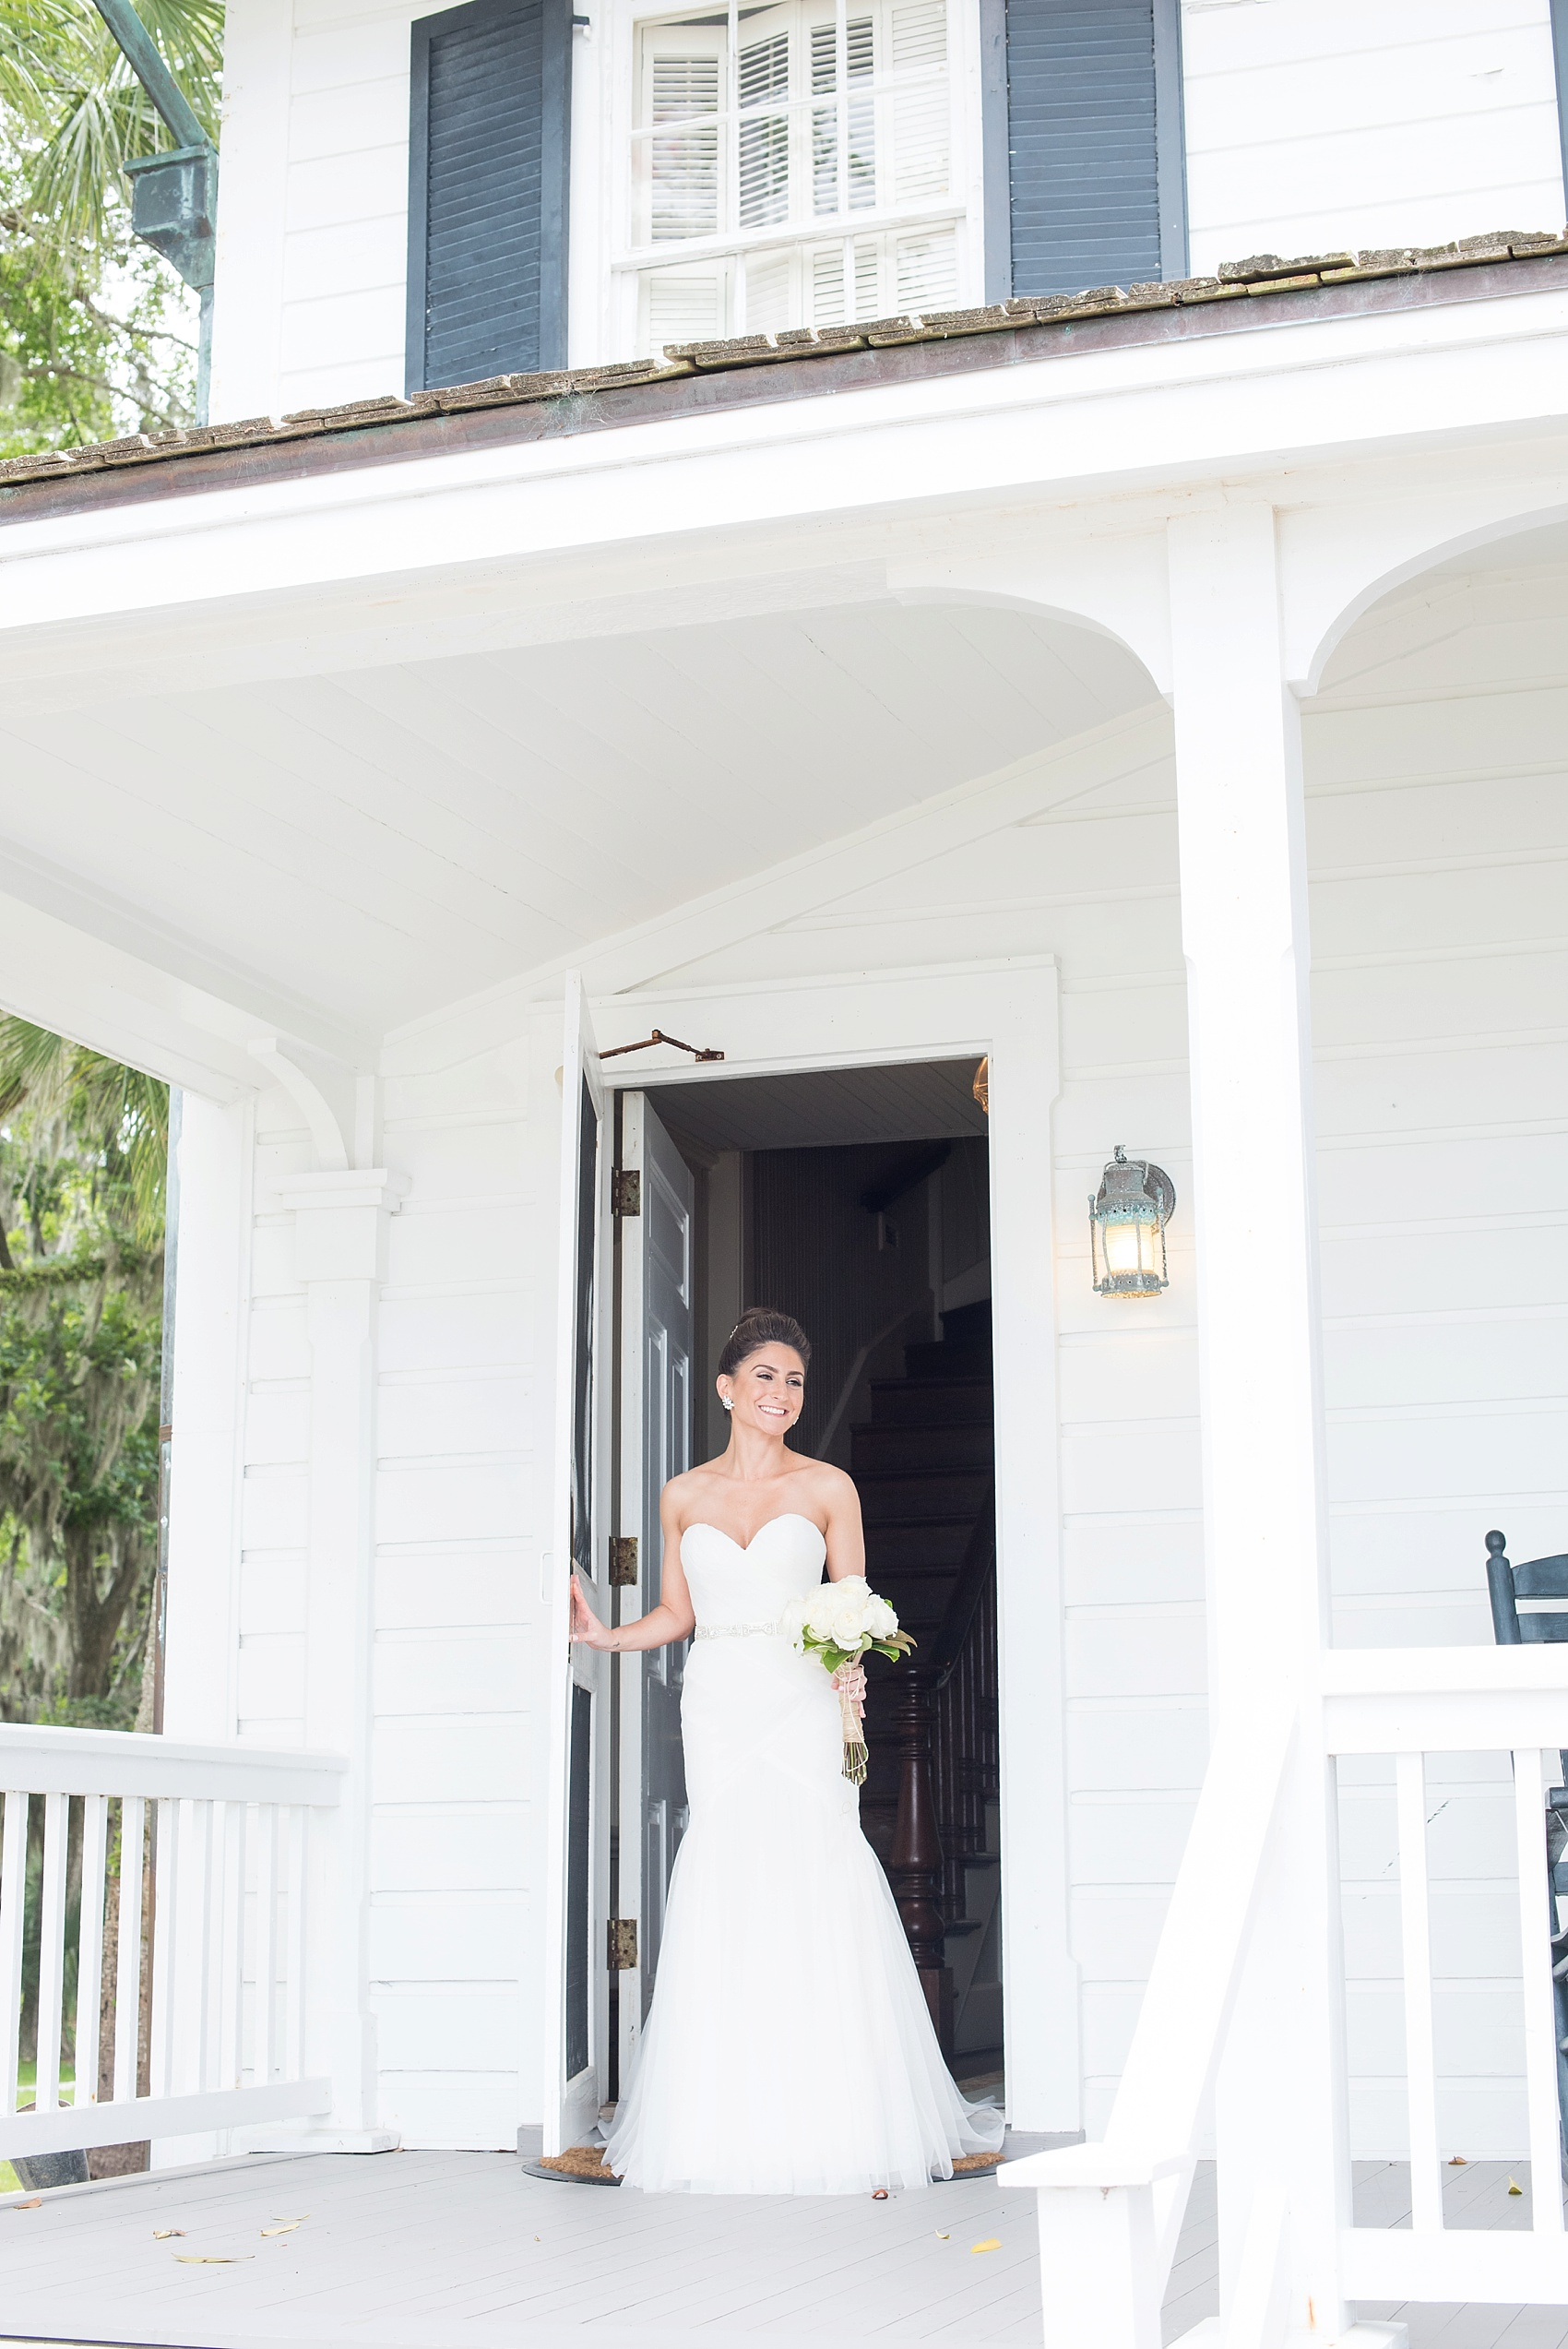 WToo by Watters wedding gown for this southern bride. Photos by Mikkel Paige in Hilton Head, Haig Point, South Carolina.